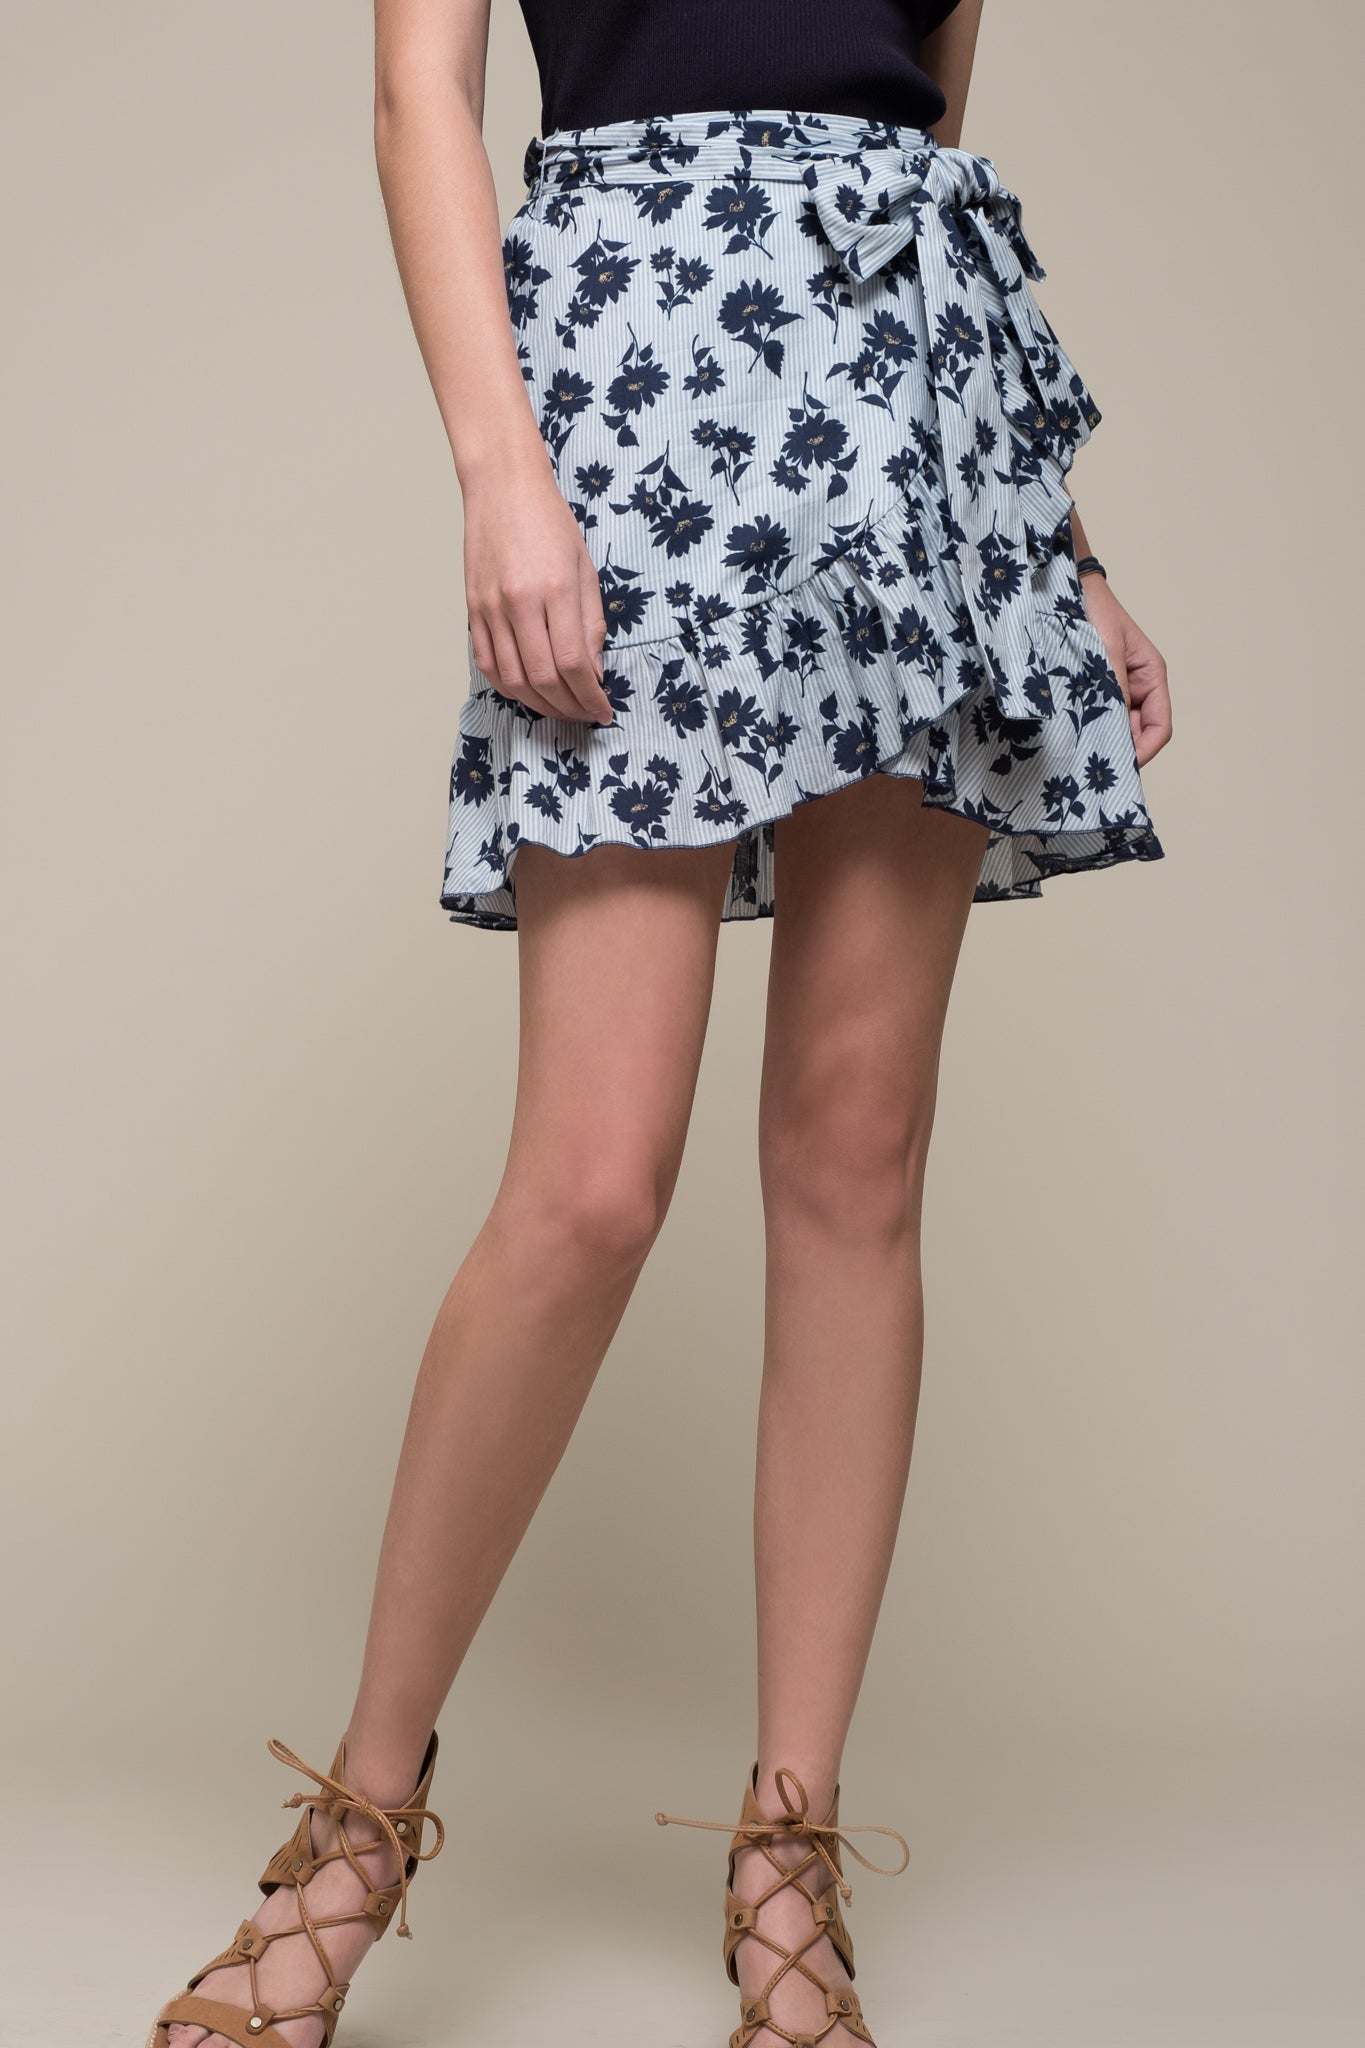 FLORAL WRAP SKIRT WITH RUFFLE